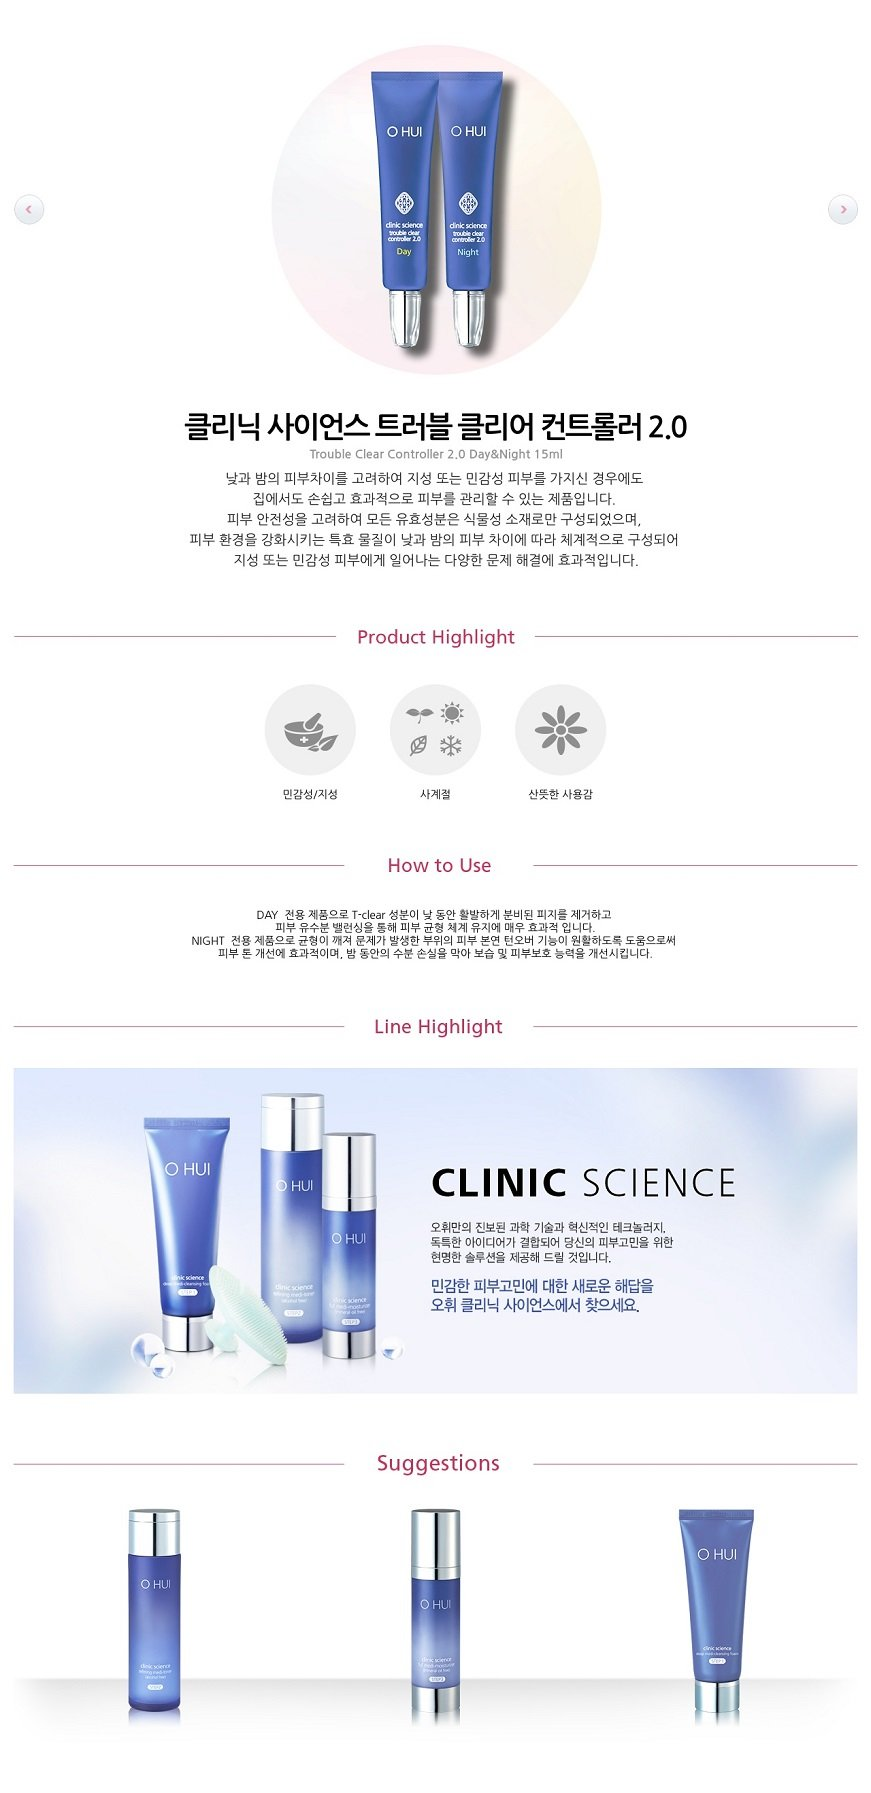 OHUI Clinic Science Trouble Clear Controller 2.0 Day 15ml and Night 15ml malaysia singapore indonesia